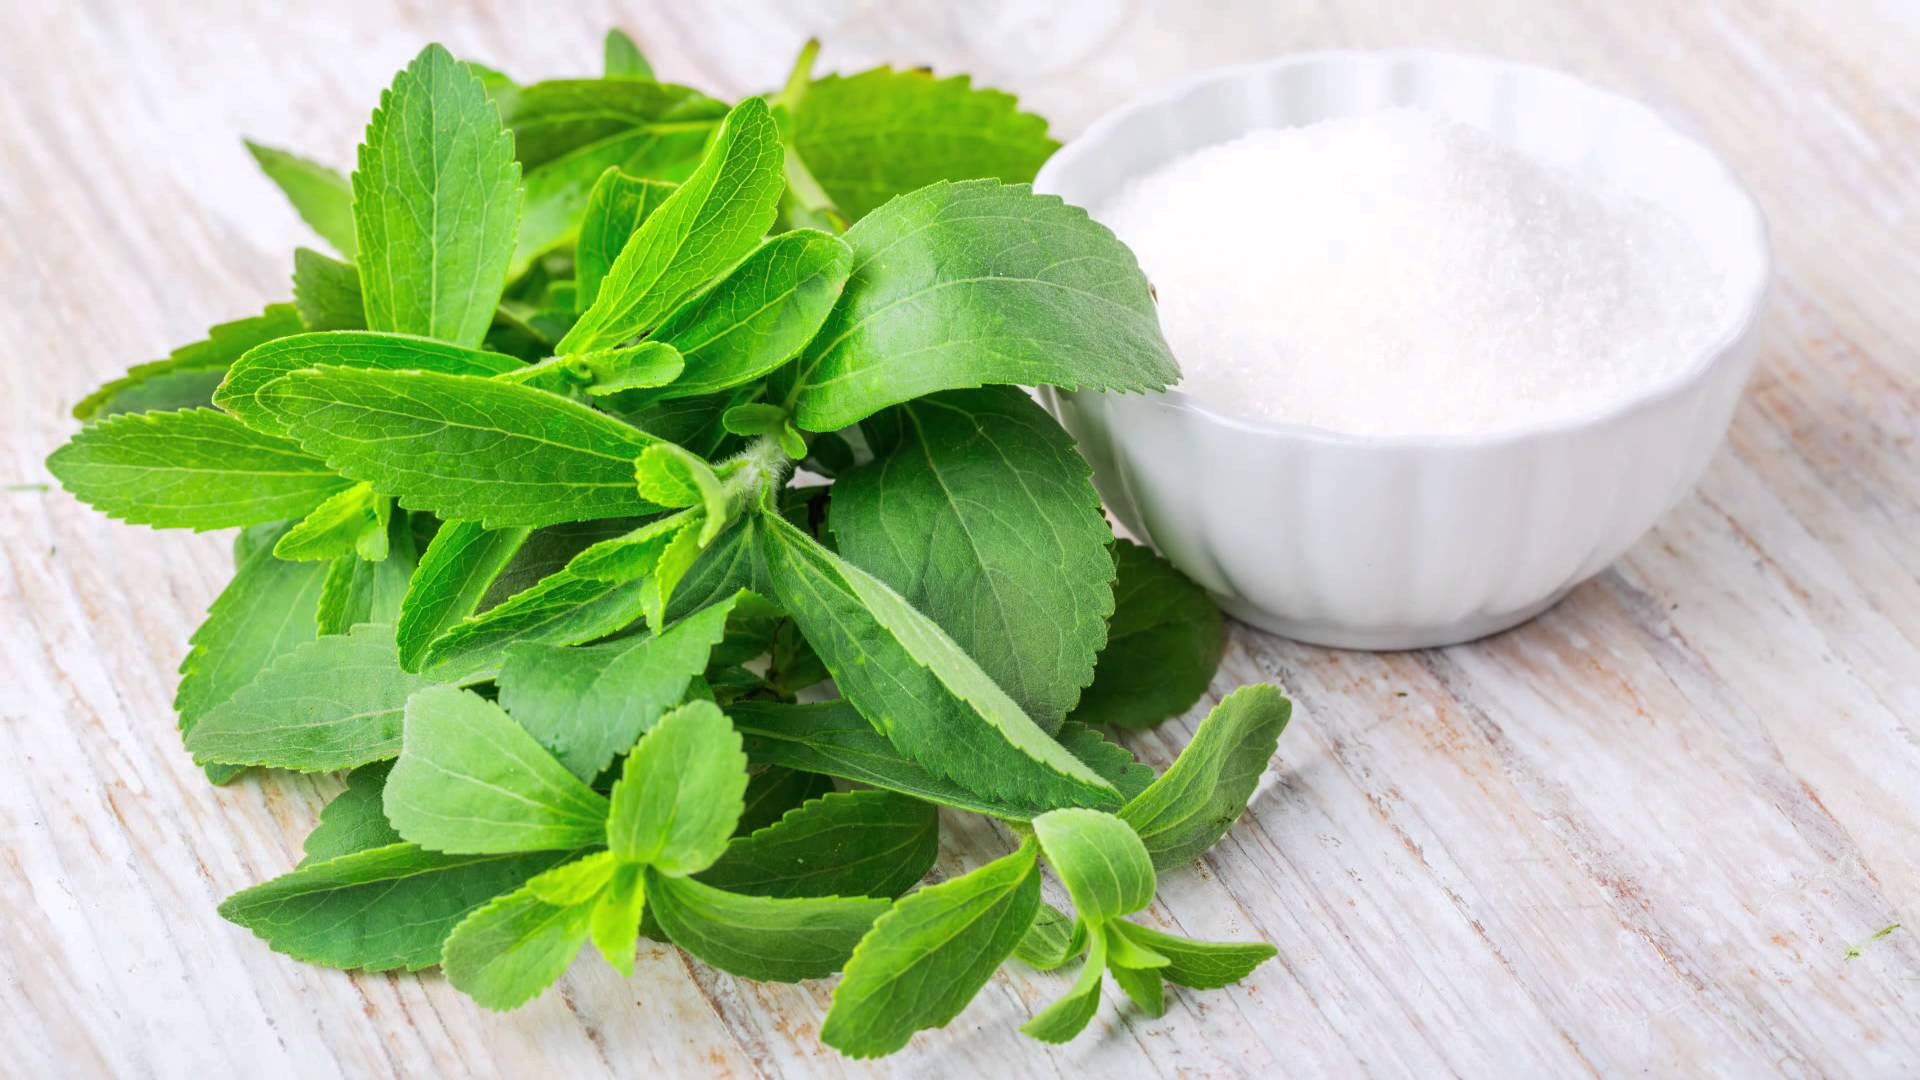 Stevia is The Future Treatment for Metabolic Syndrome Diseases, Studies Says